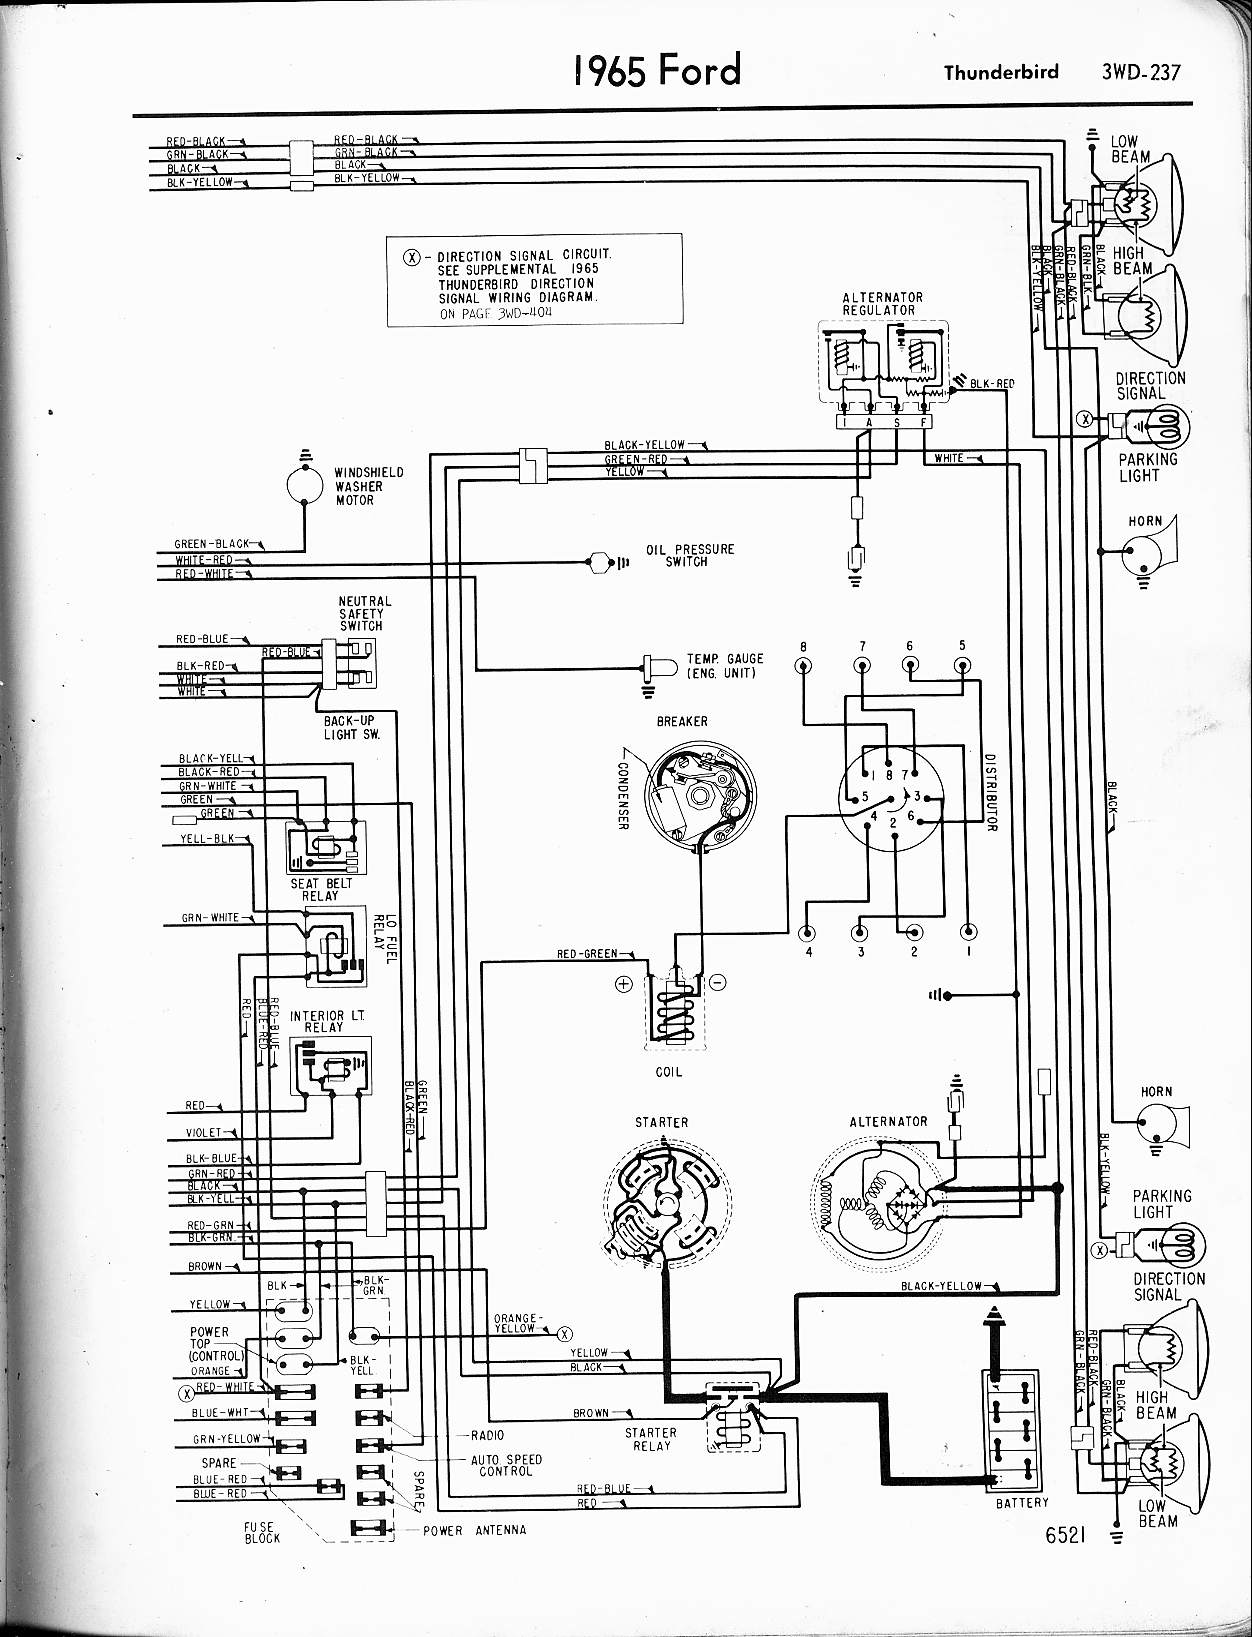 MWire5765 237 57 65 ford wiring diagrams Ford E 350 Wiring Diagrams at n-0.co